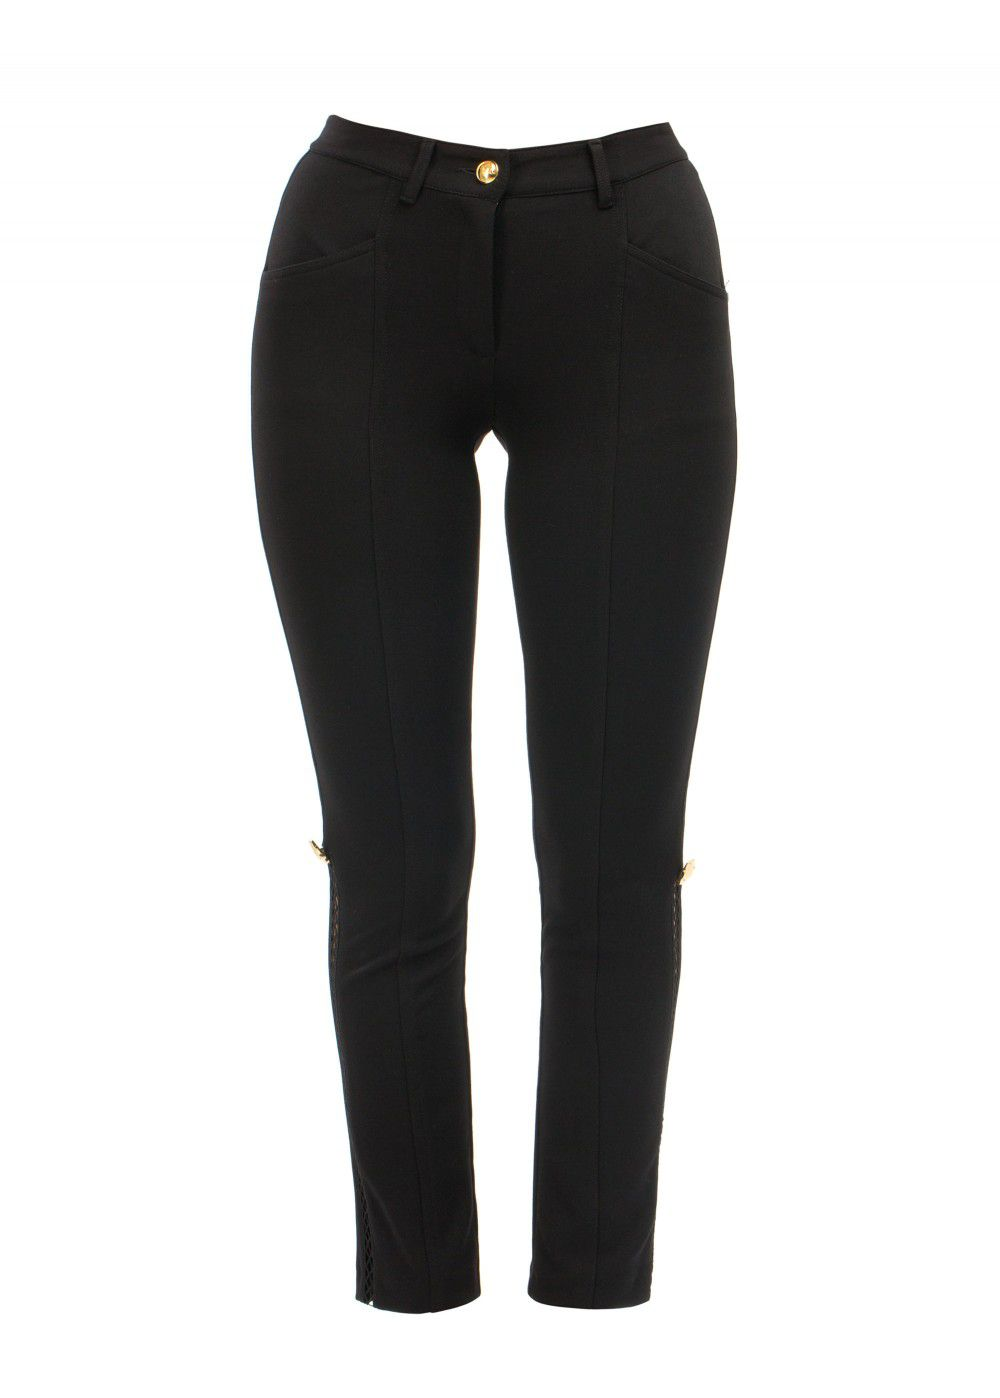 Roberto Cavalli Black Trousers